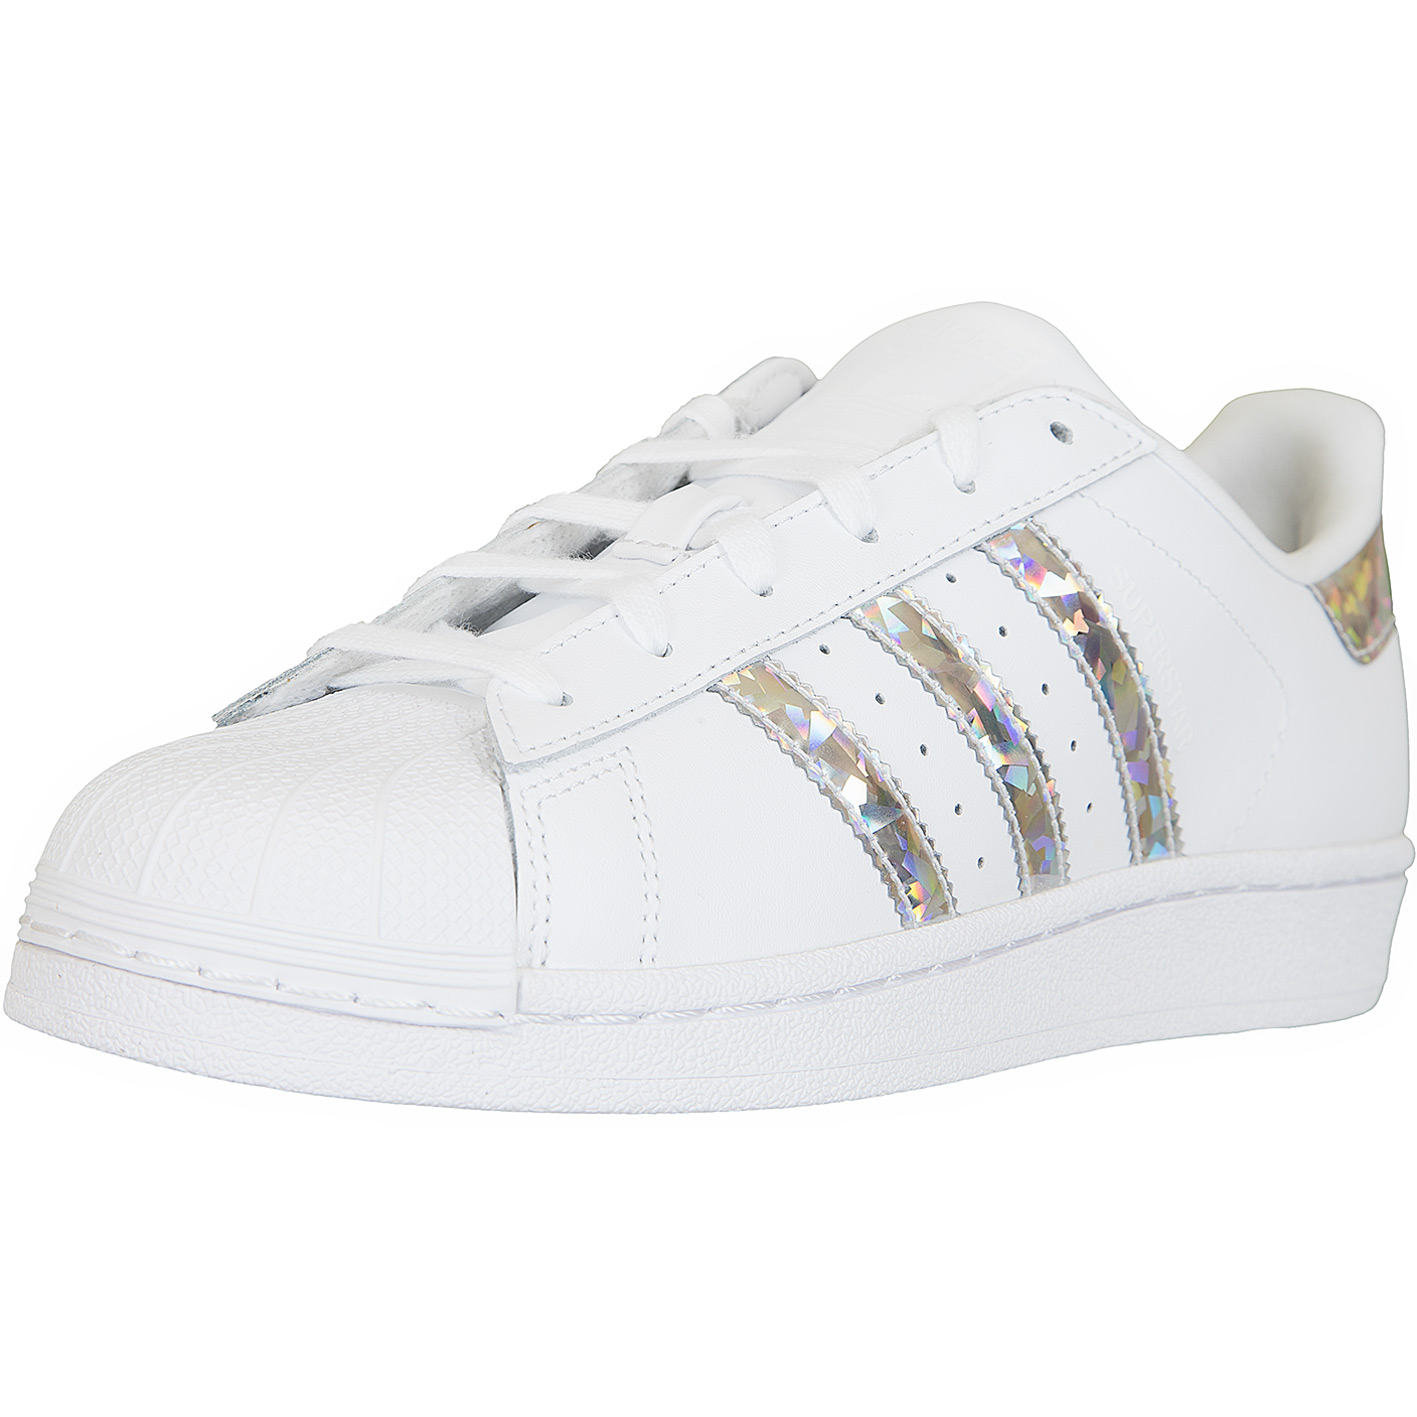 outlet store sale reasonably priced best selling Adidas Originals Damen Sneaker Superstar weiß/silber